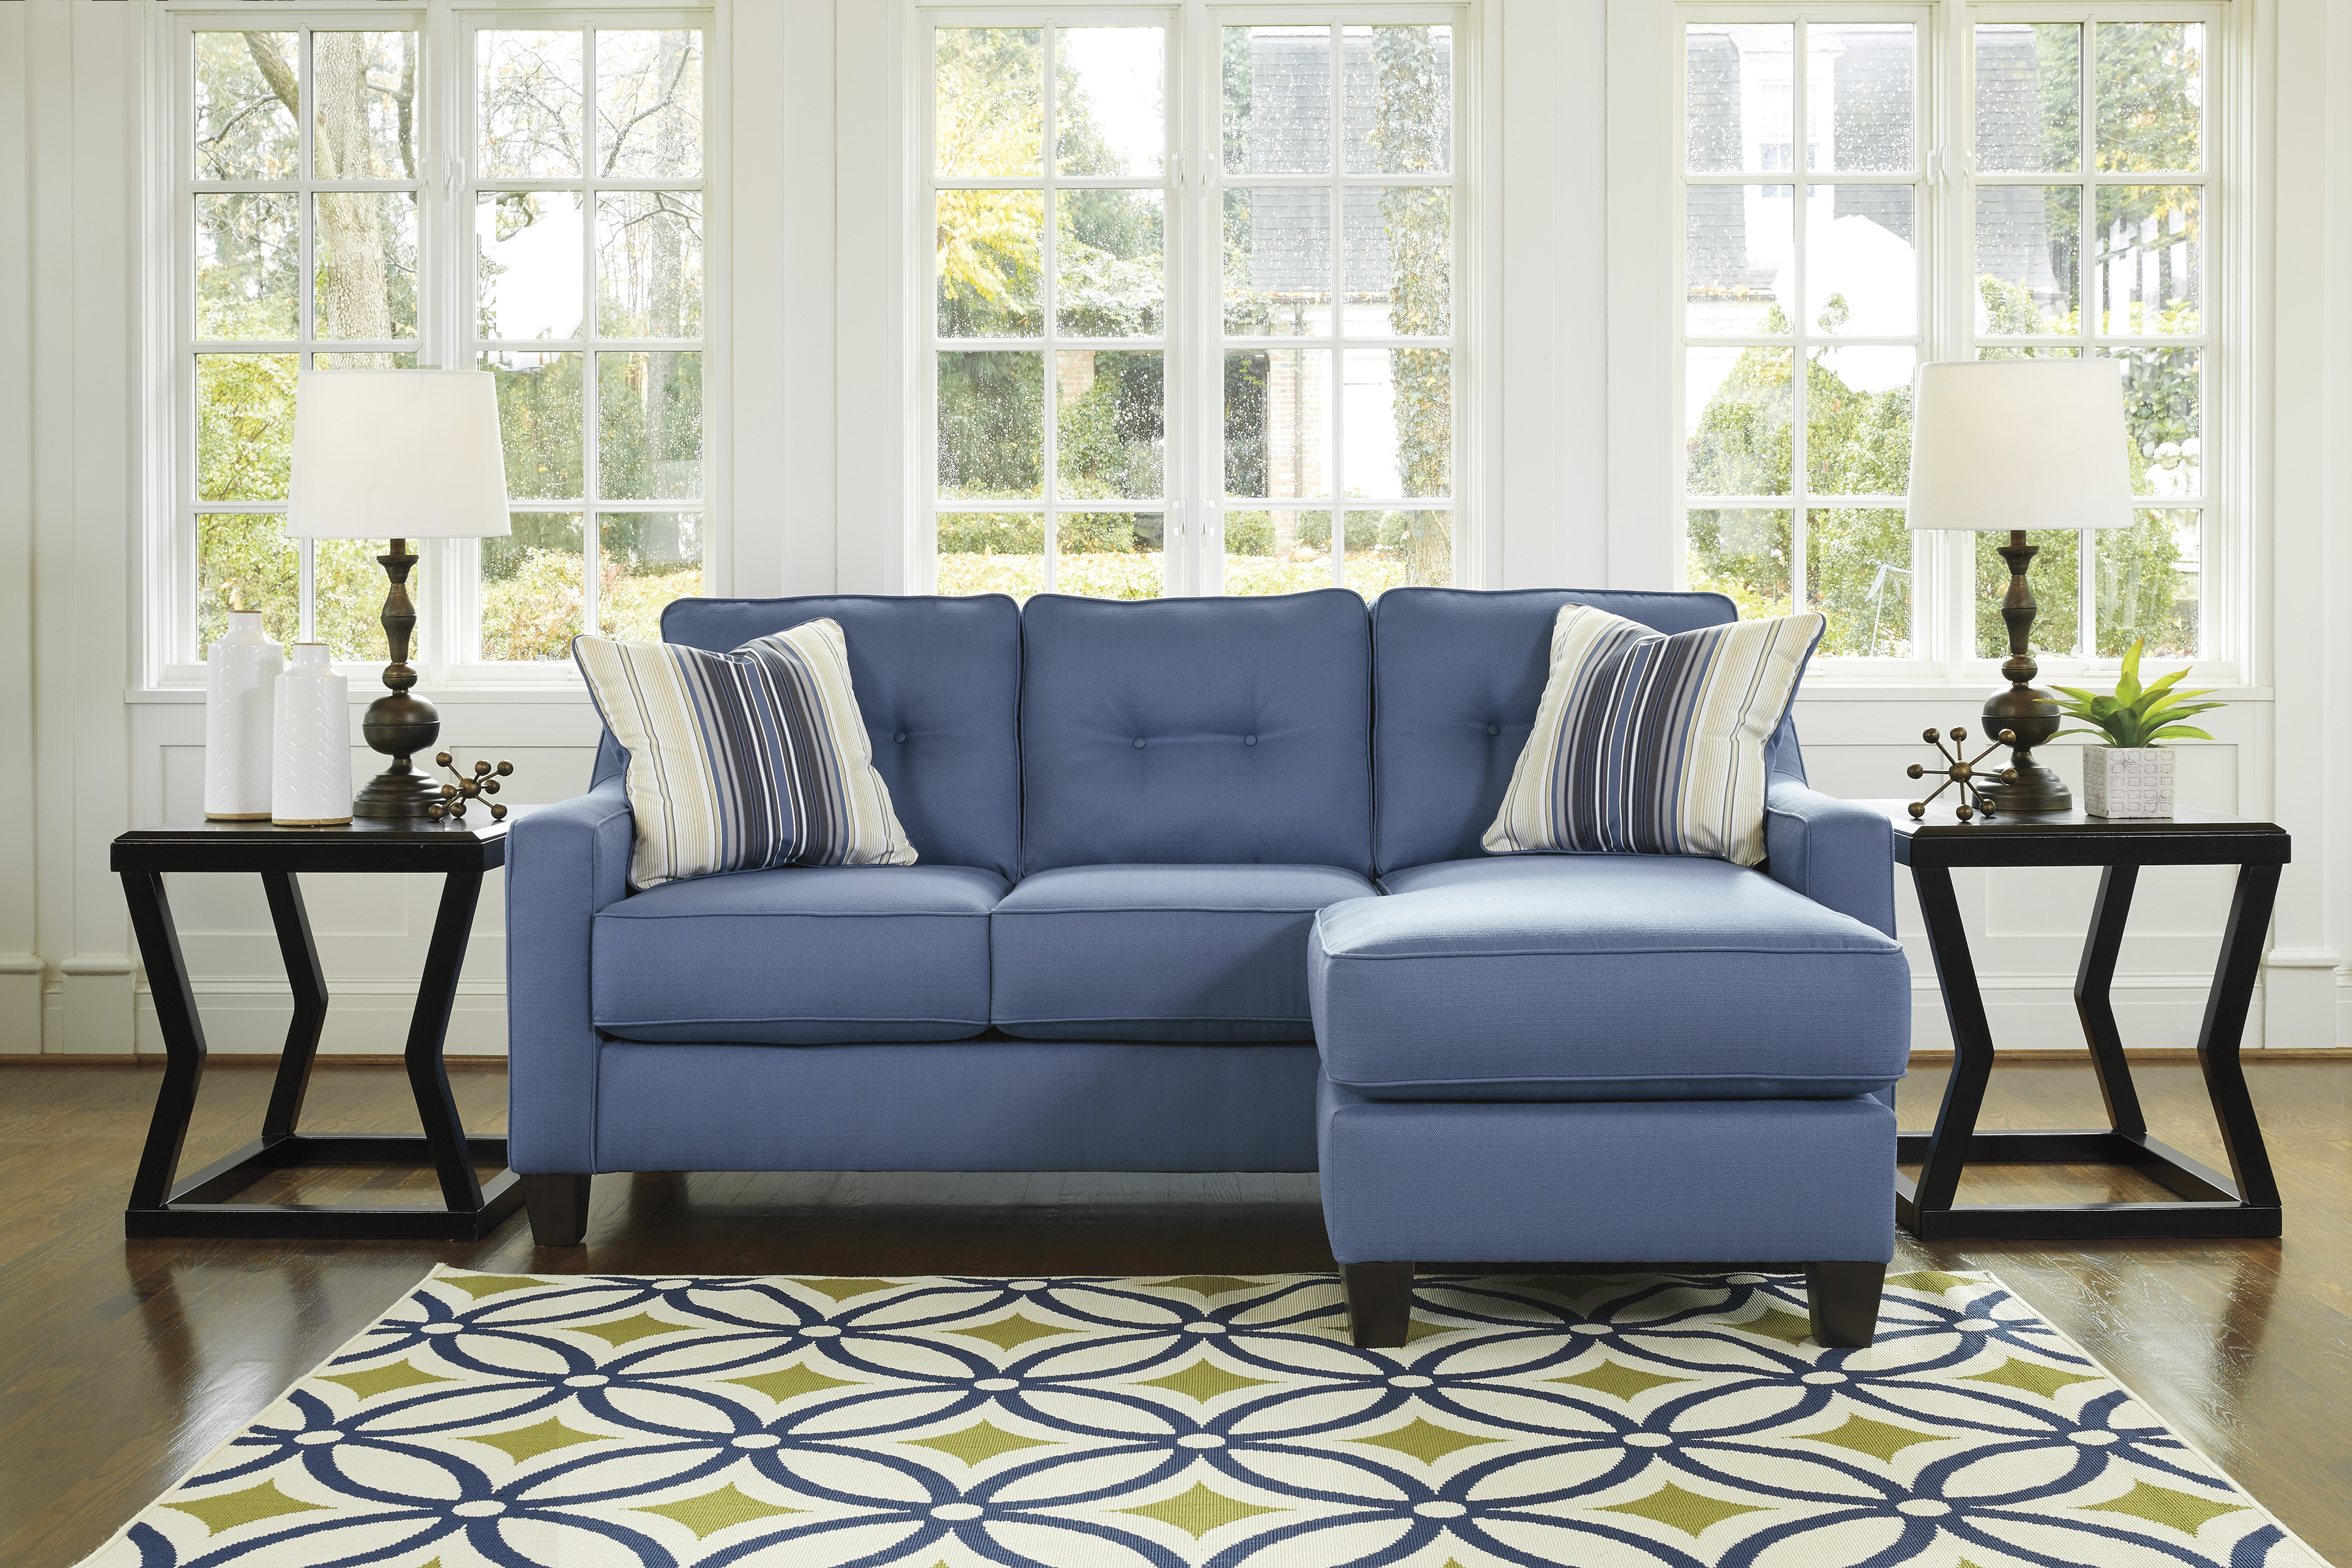 Joel Jones Furniture In Rancho Cucamonga, CA   Great Quality At A Great  Price Sofas, Love Seats, Recliners, Dining, Bedroom, Mattresses,  Lamps,rugs, ...